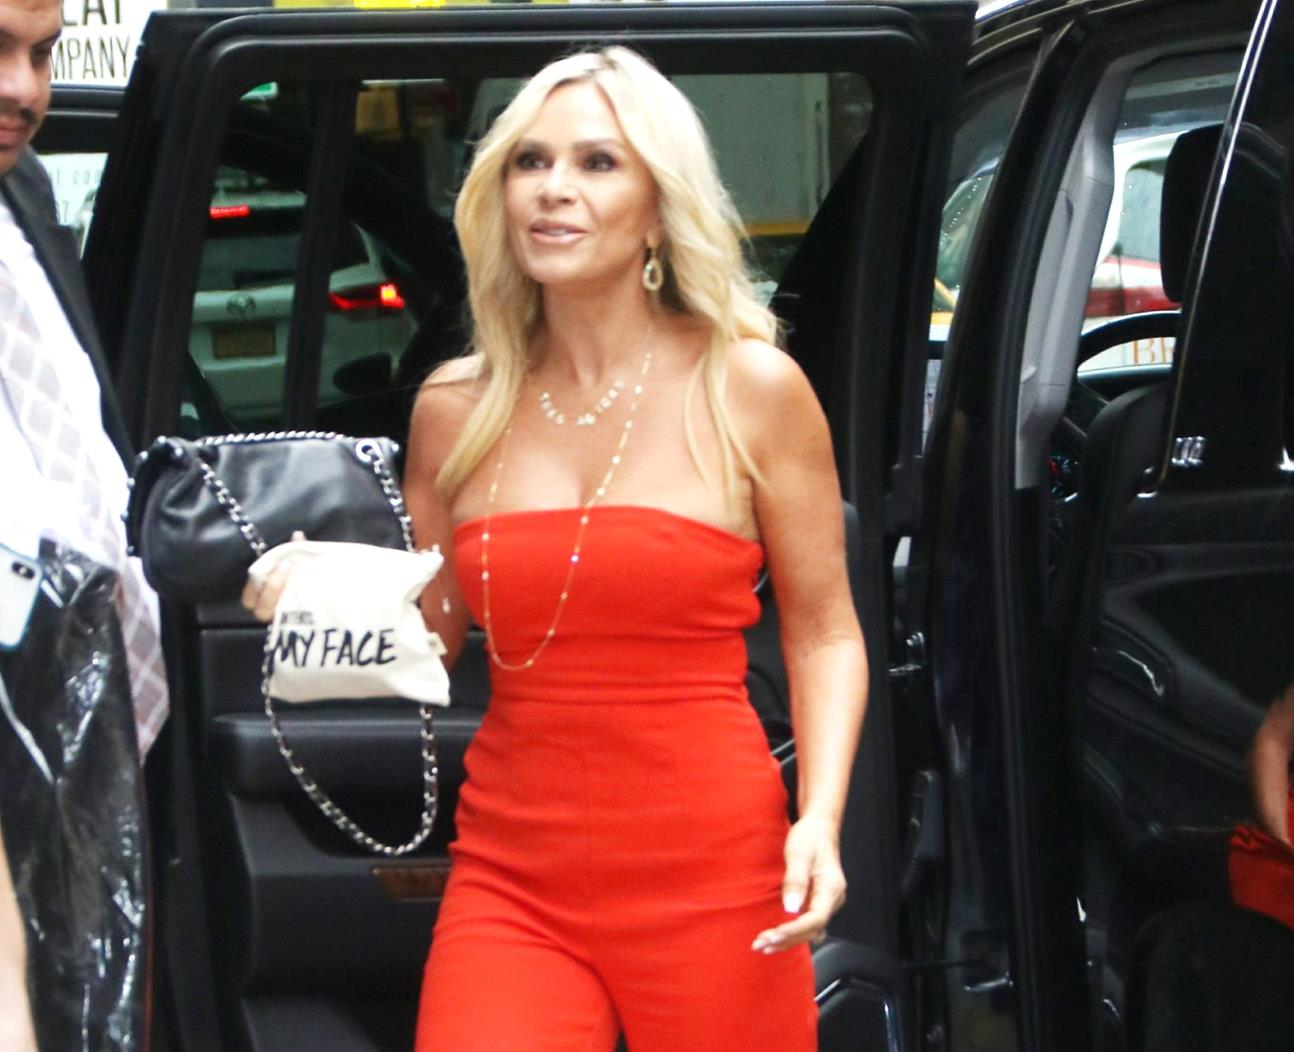 REPORT: Tamra Judge Currently in Negotiations to Return to the RHOC Amid Lackluster Footage From Current Cast, Find Out if it's for a 'Friend' or 'Full-Time' Role